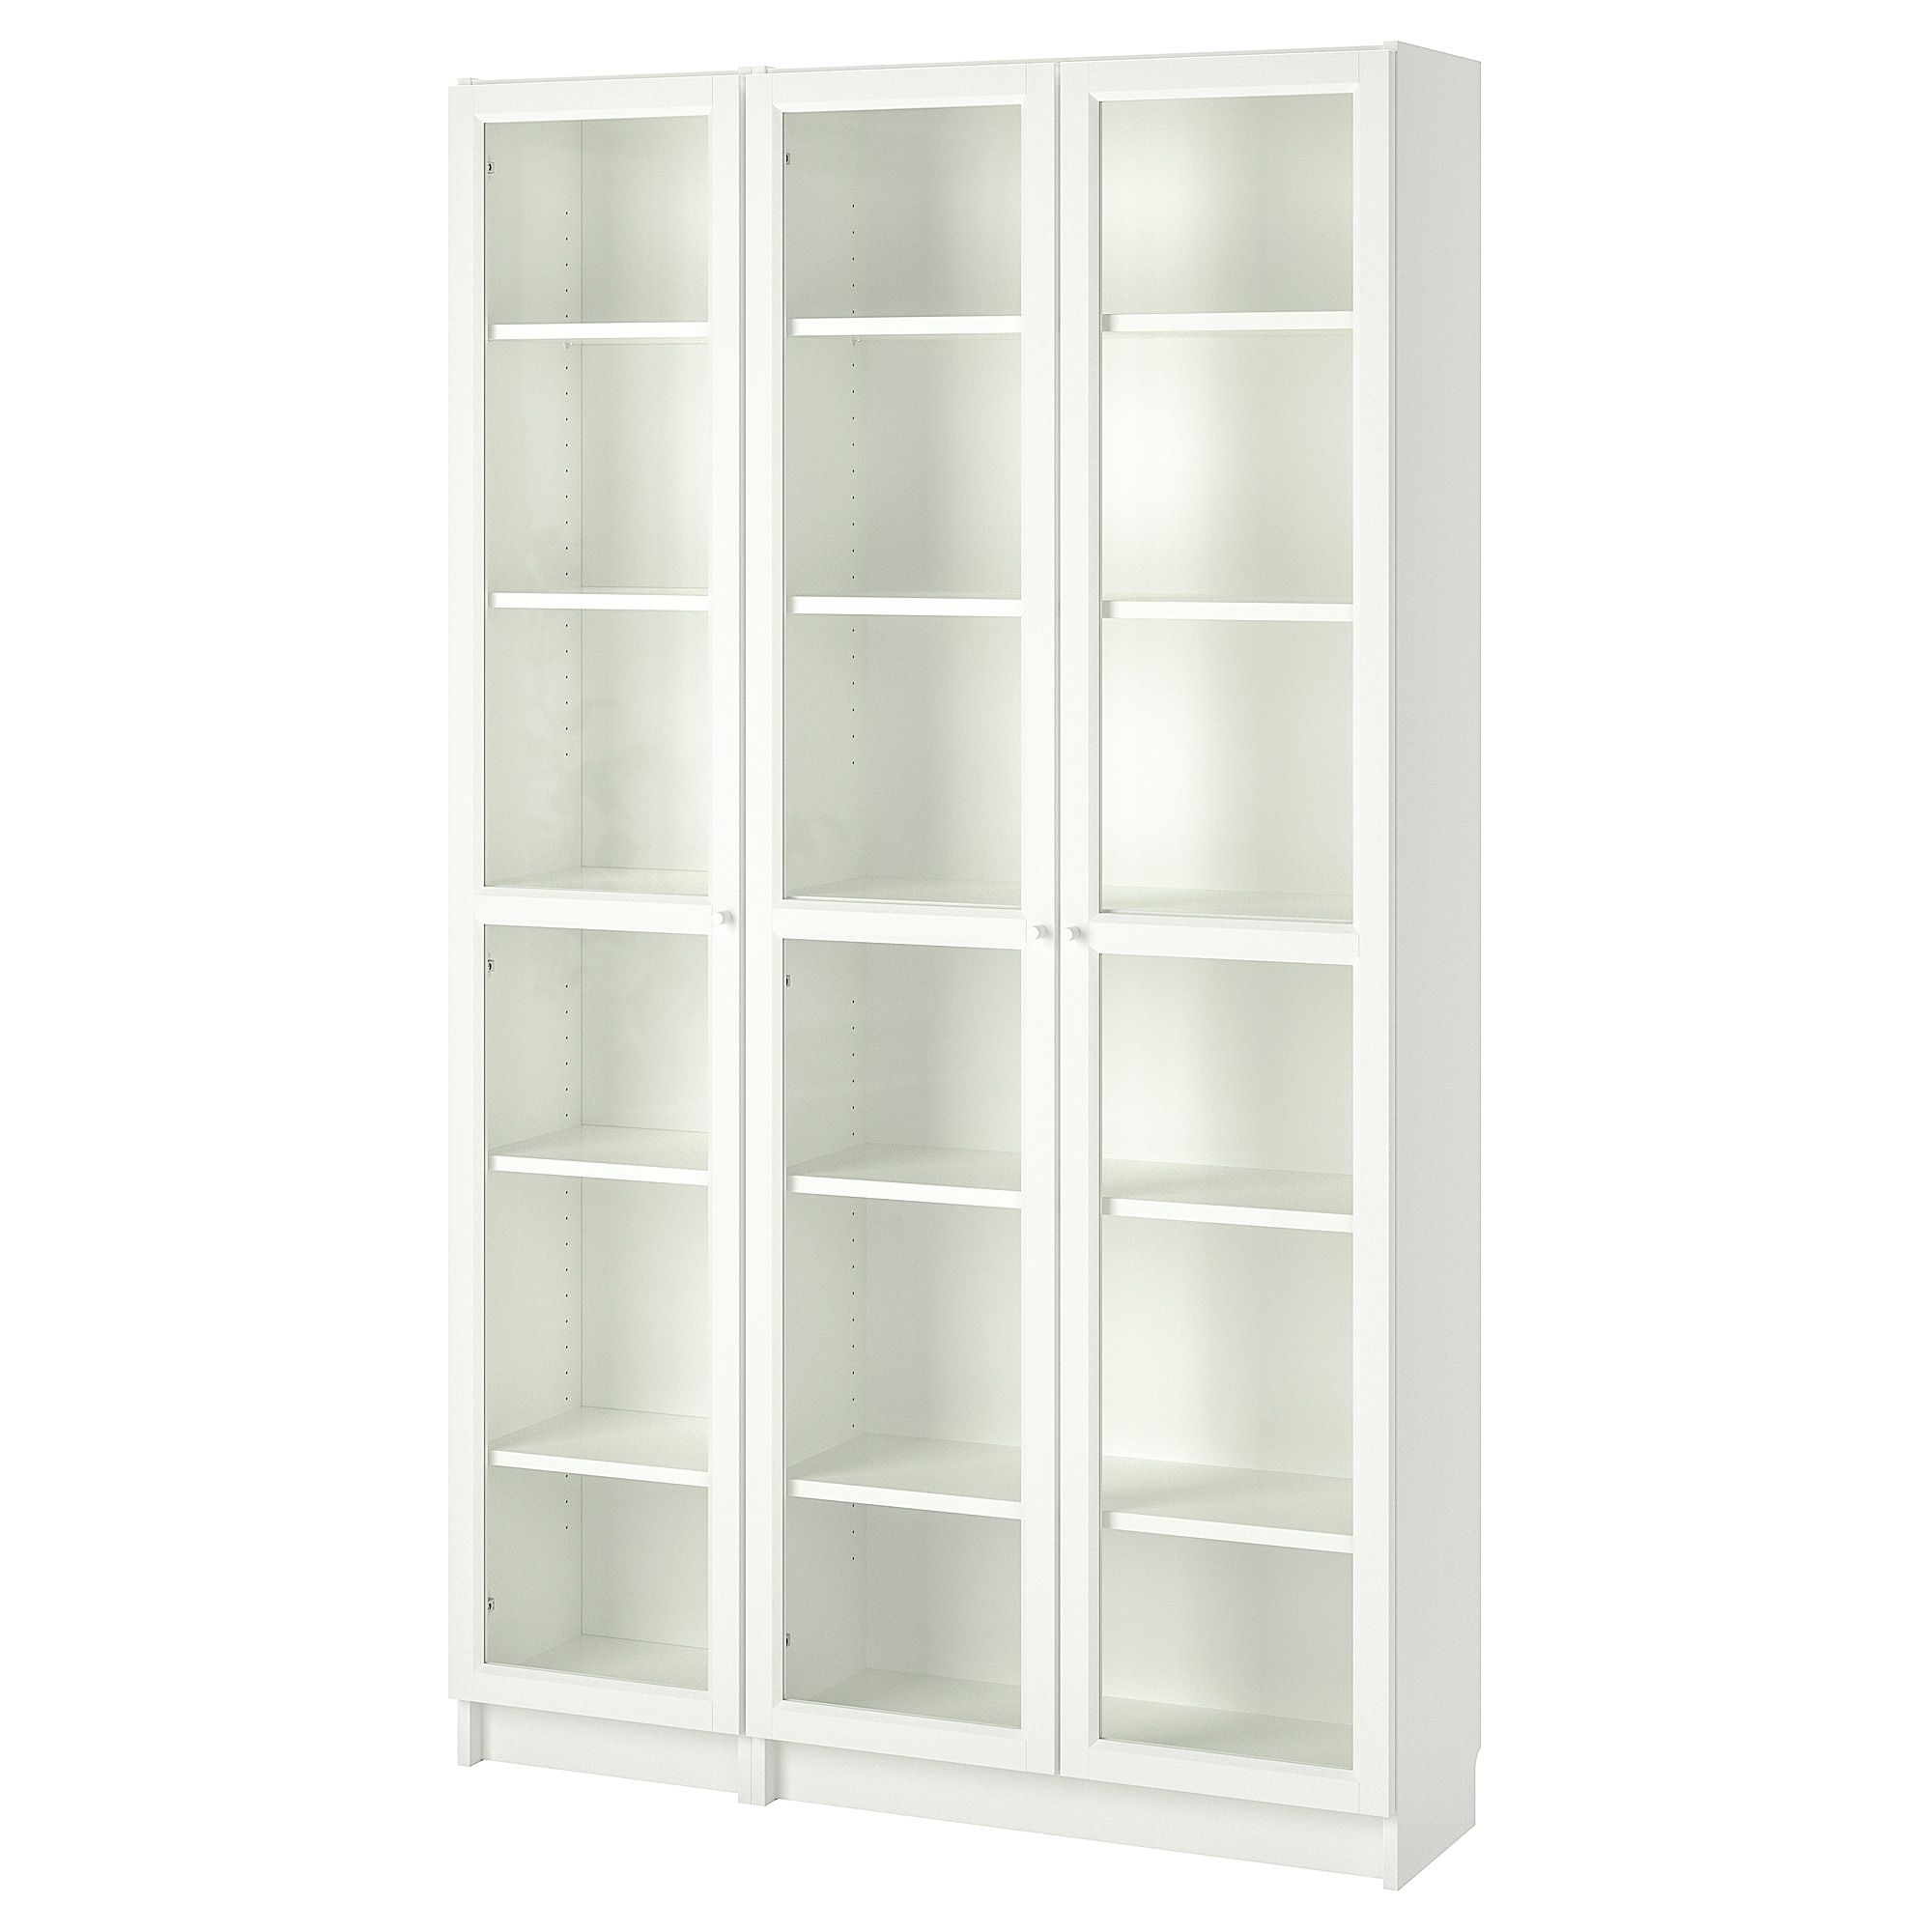 Ikea Billy Oxberg White Bookcase With Glass Doors Ikea Bookcase Bookcase With Glass Doors Bookcase